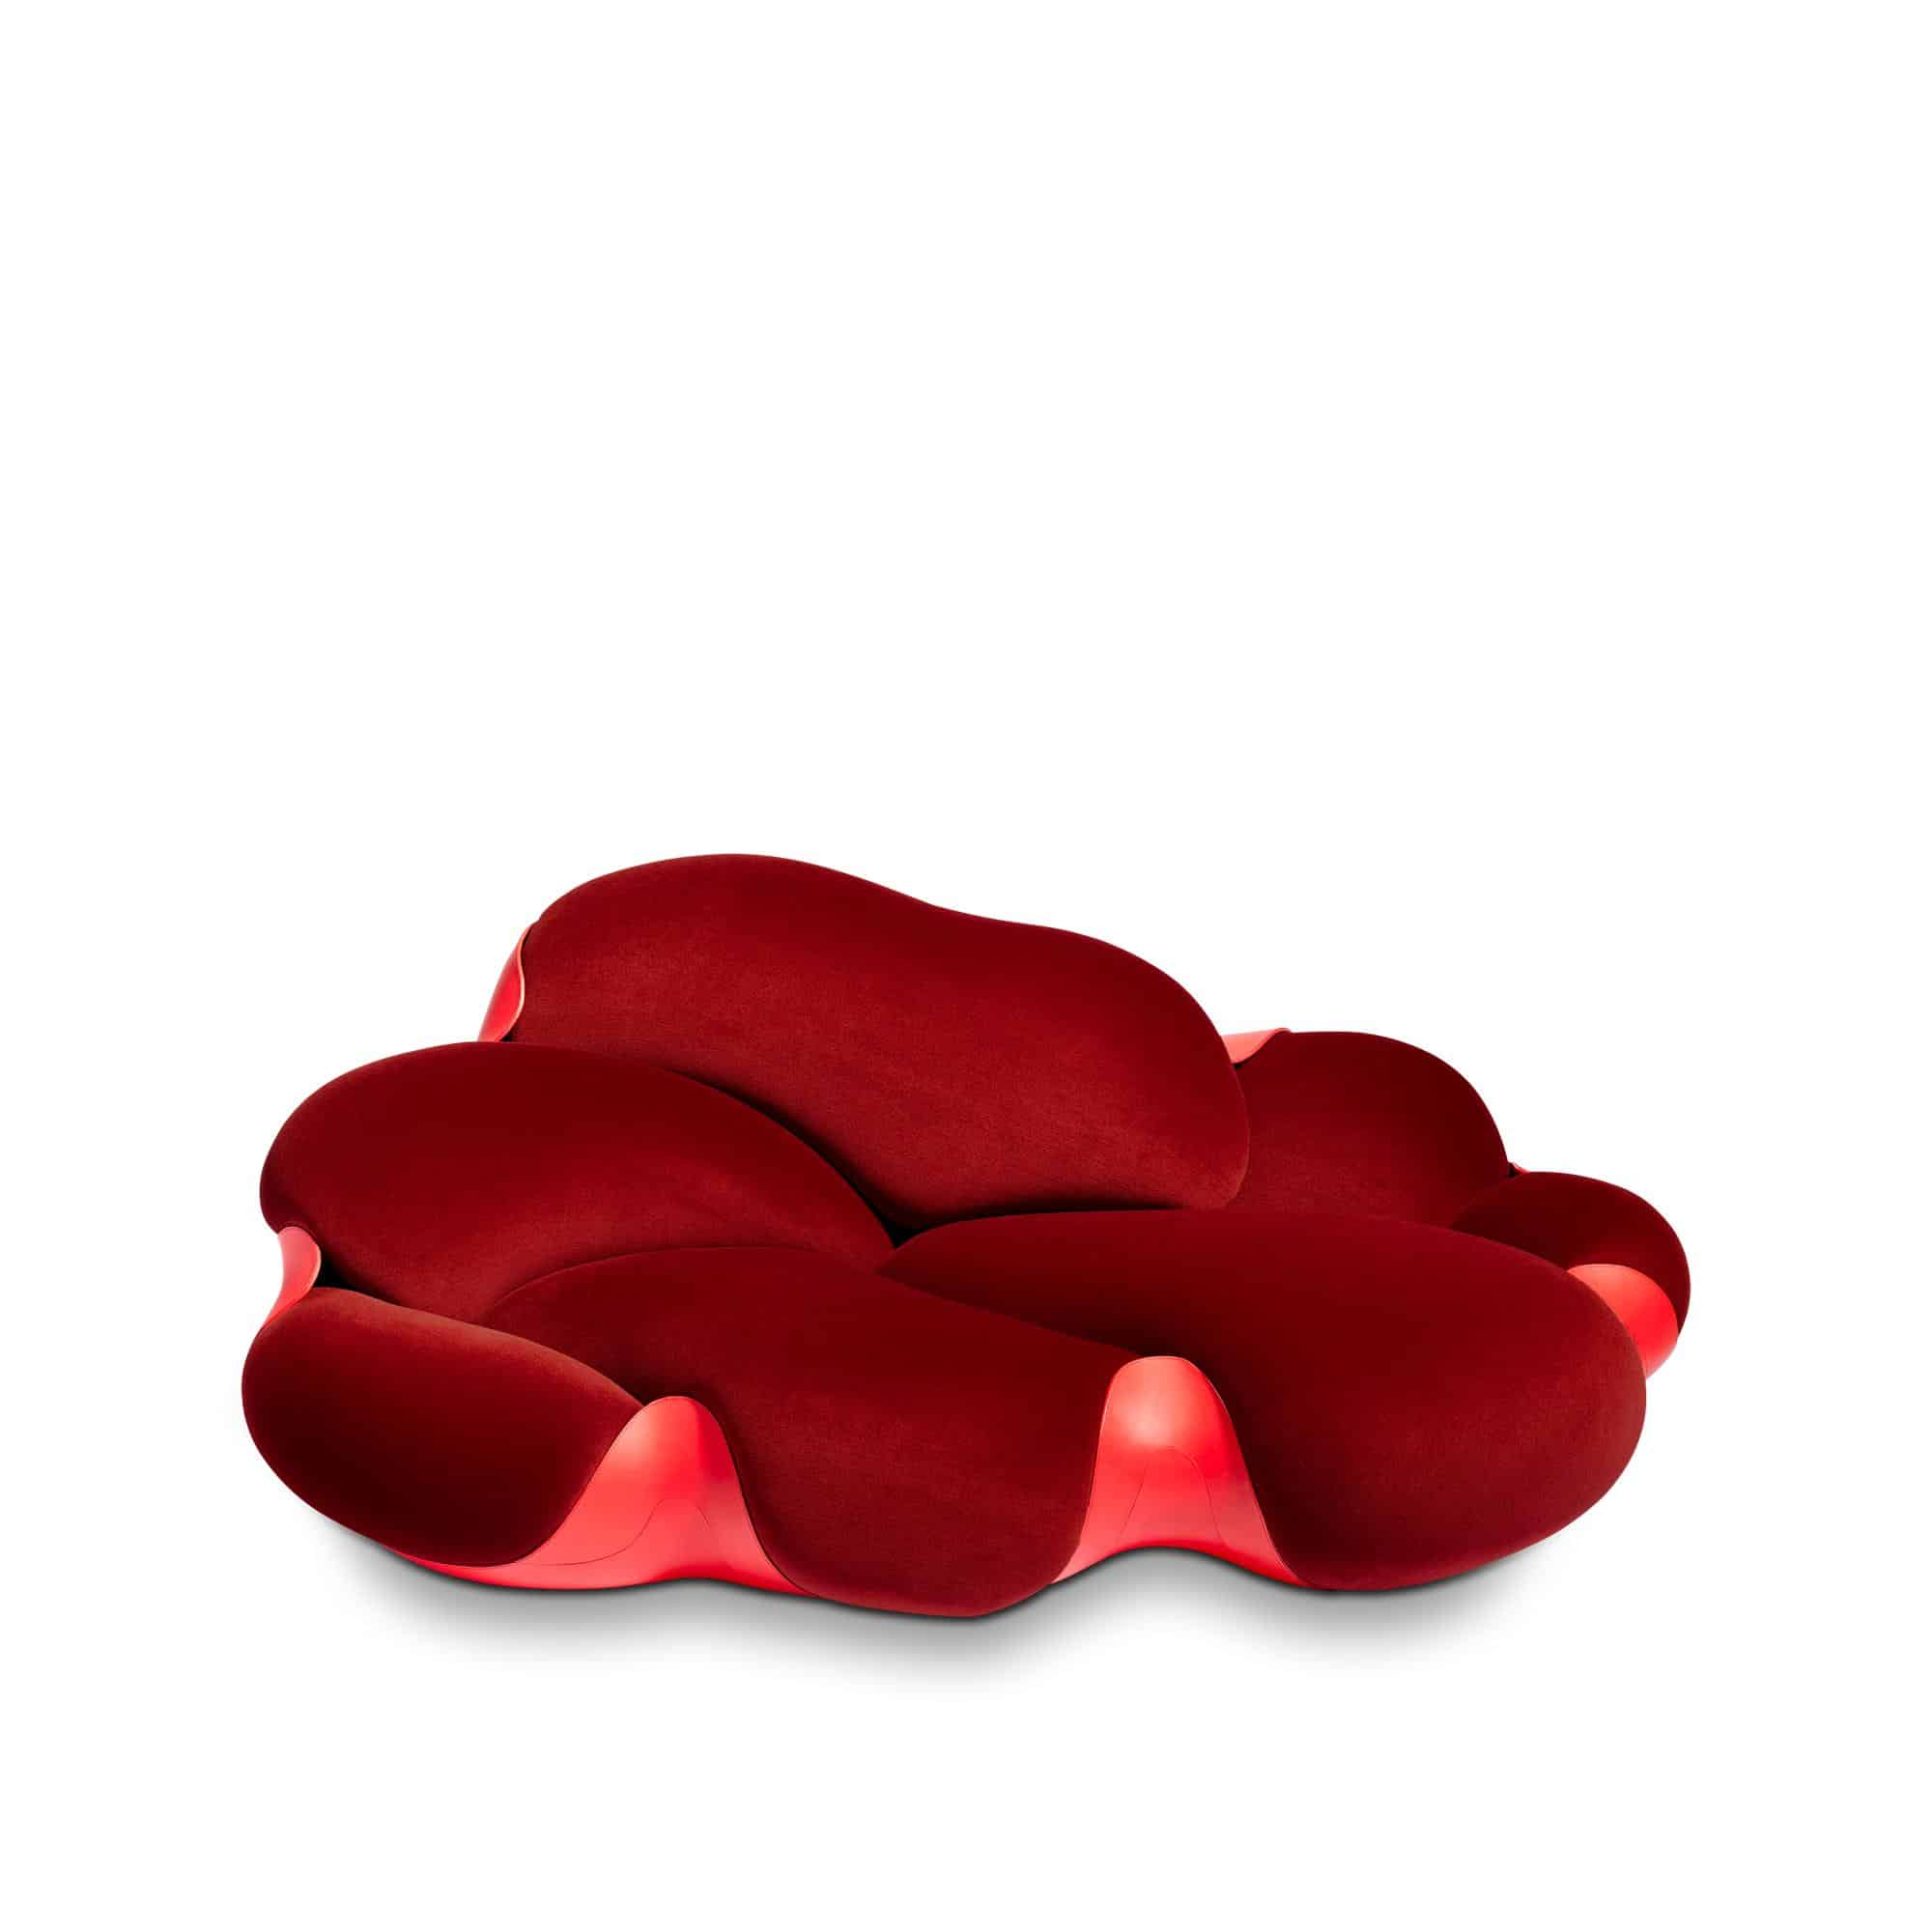 Designer Furniture for Living Room _louis-vuitton--BOMBOCA SOFA BY FERNANDO AND HUMBERTO CAMPANA